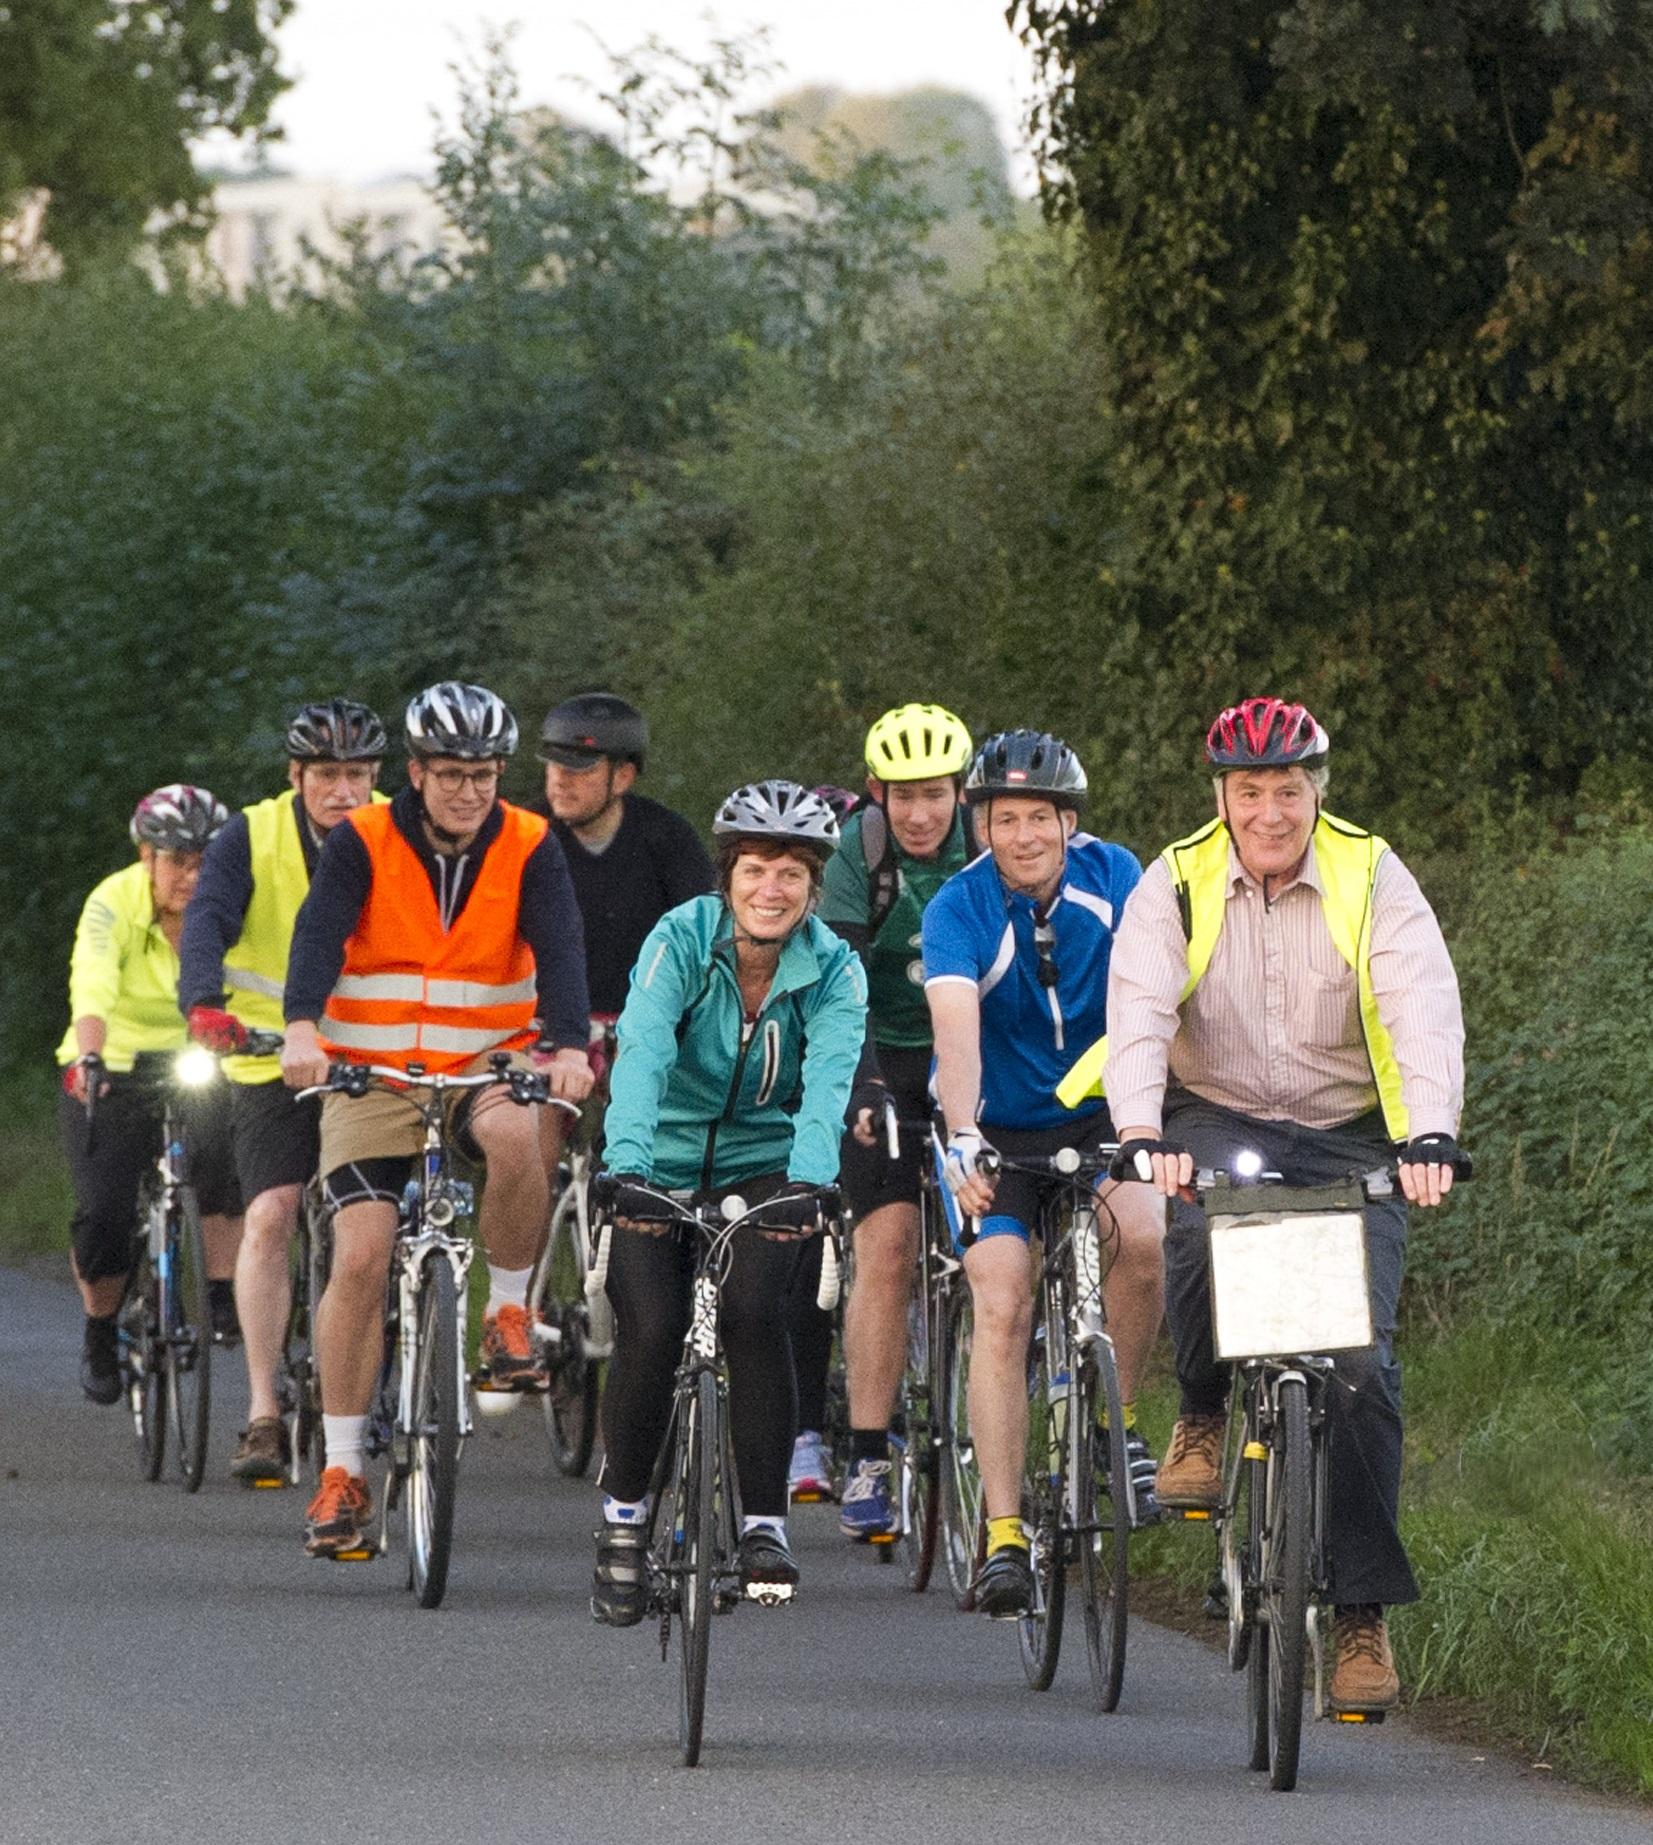 Cyclists ride to Cambridge to raise £1m for student support